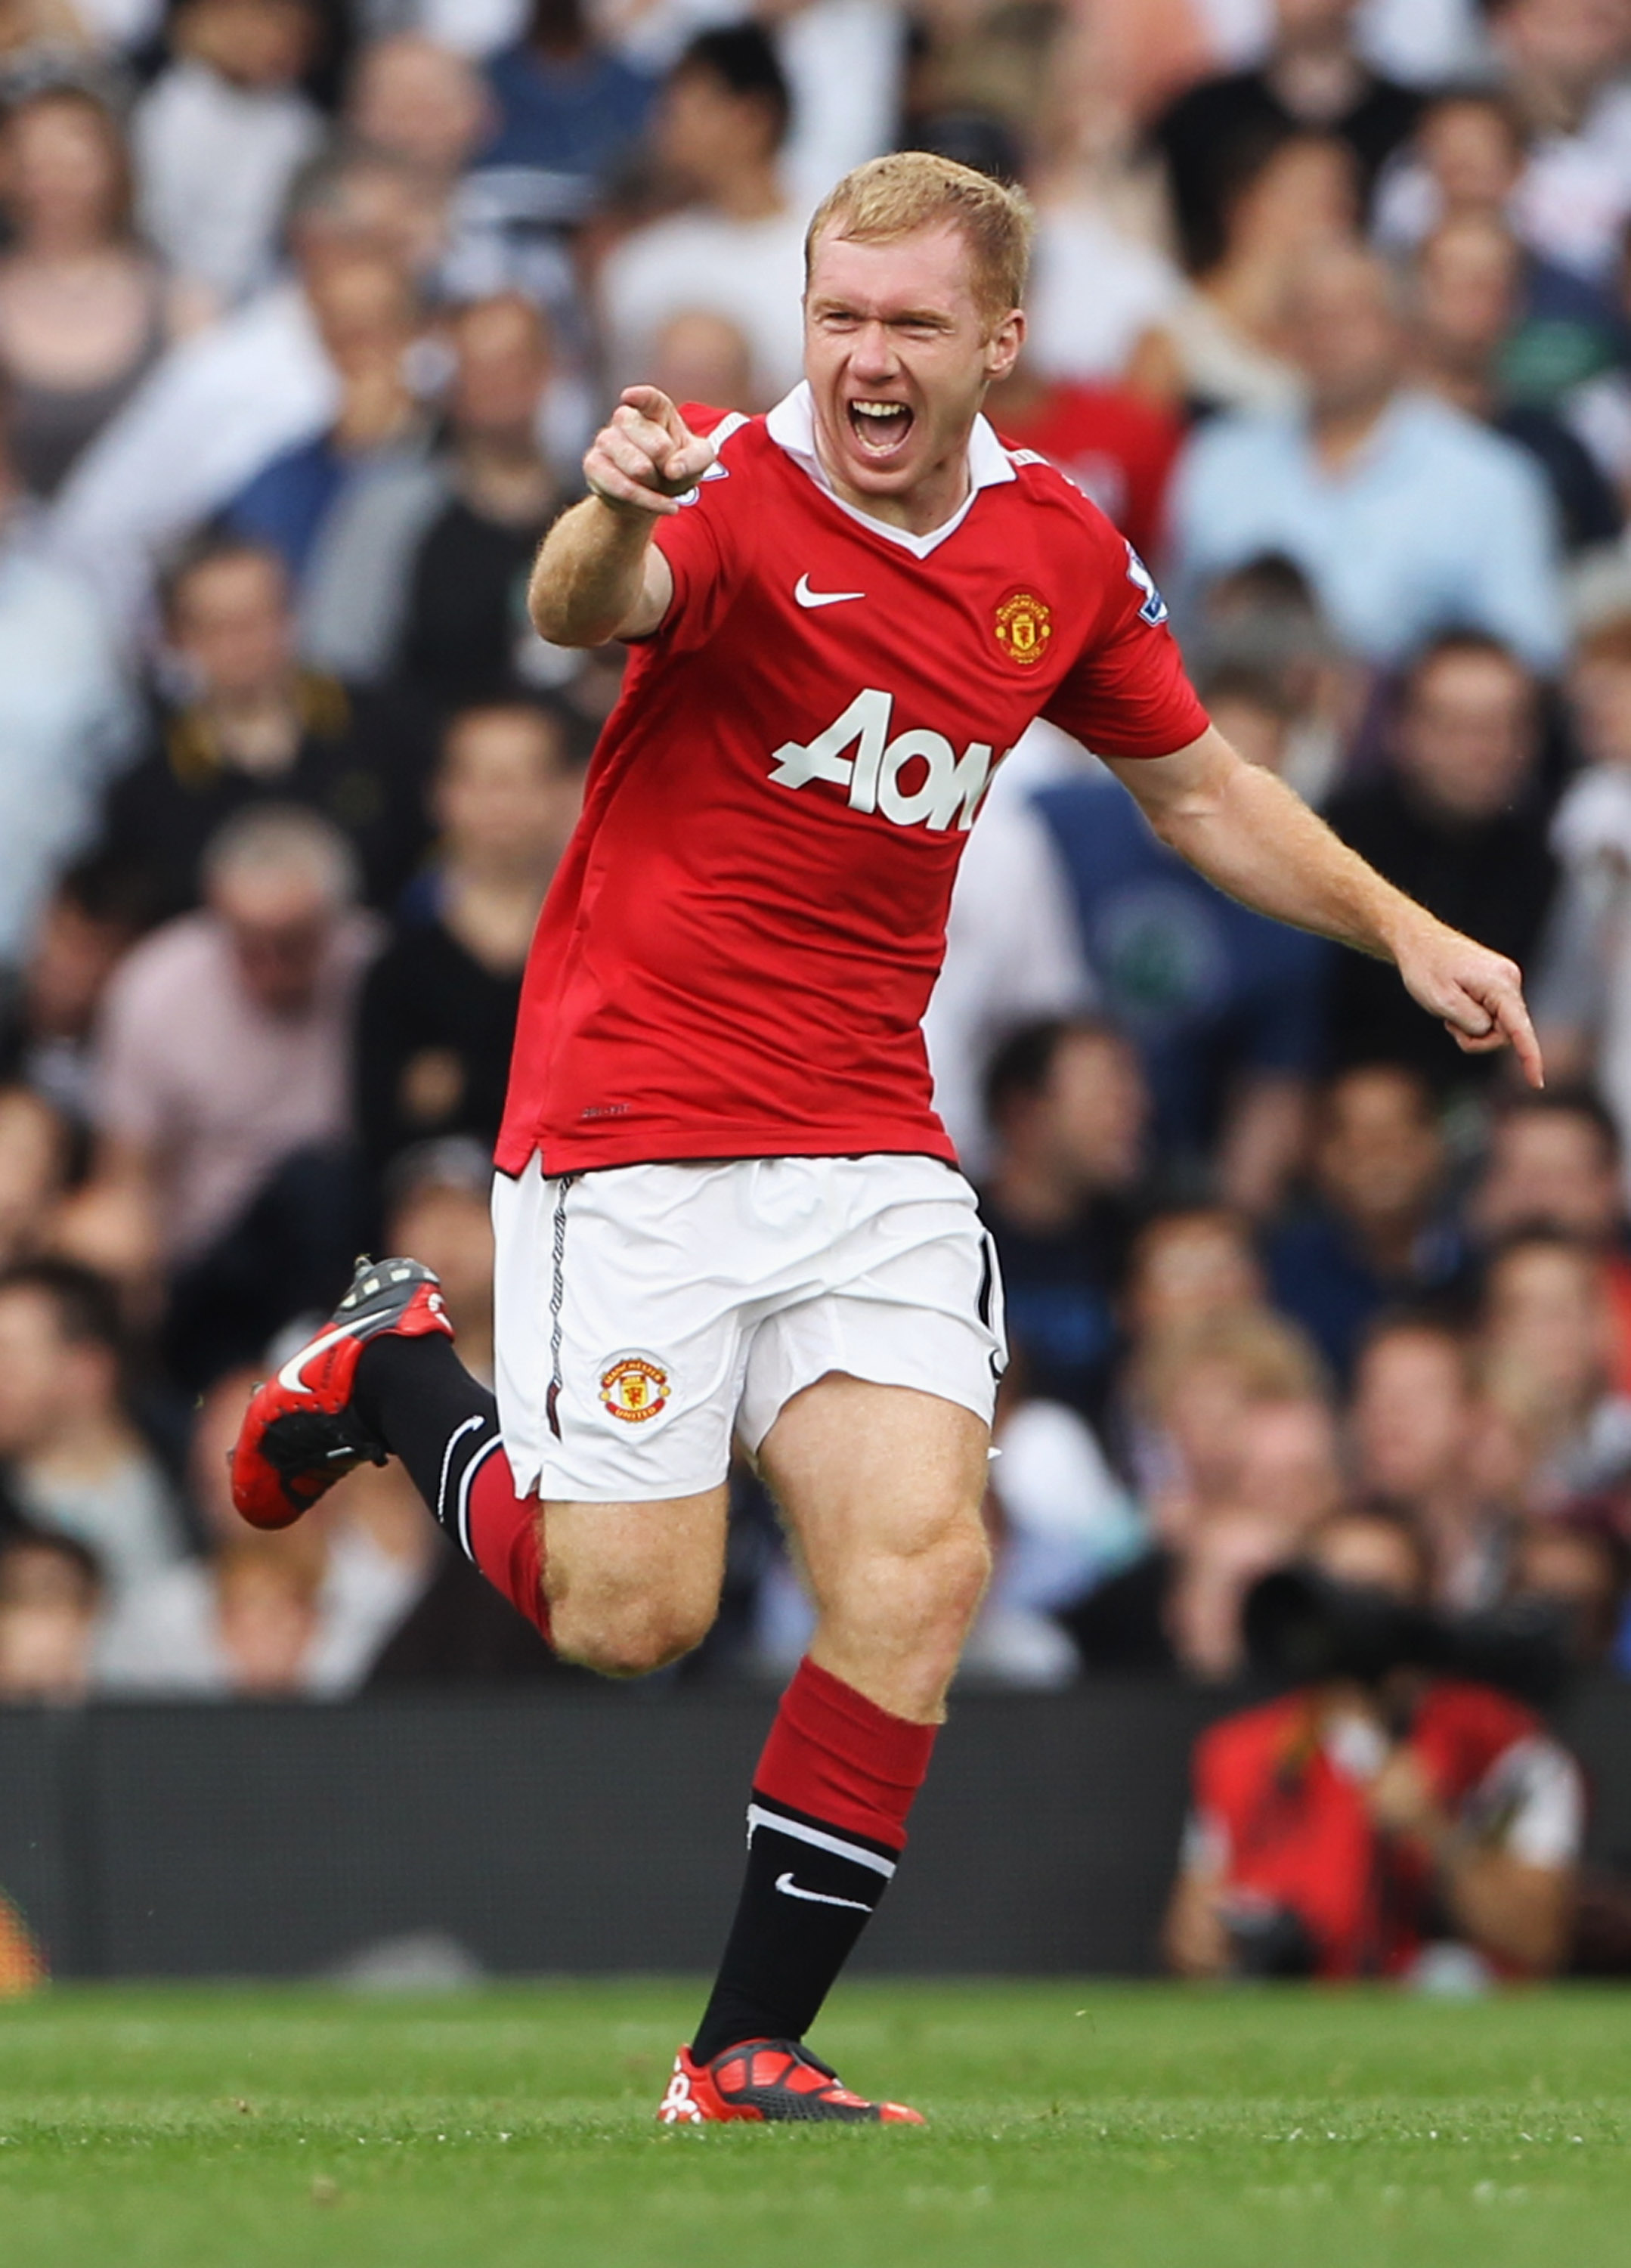 LONDON, ENGLAND - AUGUST 22:  Paul Scholes of Manchester United celebrates as he scores their first goal during the Barclays Premier League match between Fulham and Manchester United at Craven Cottage on August 22, 2010 in London, England.  (Photo by Phil